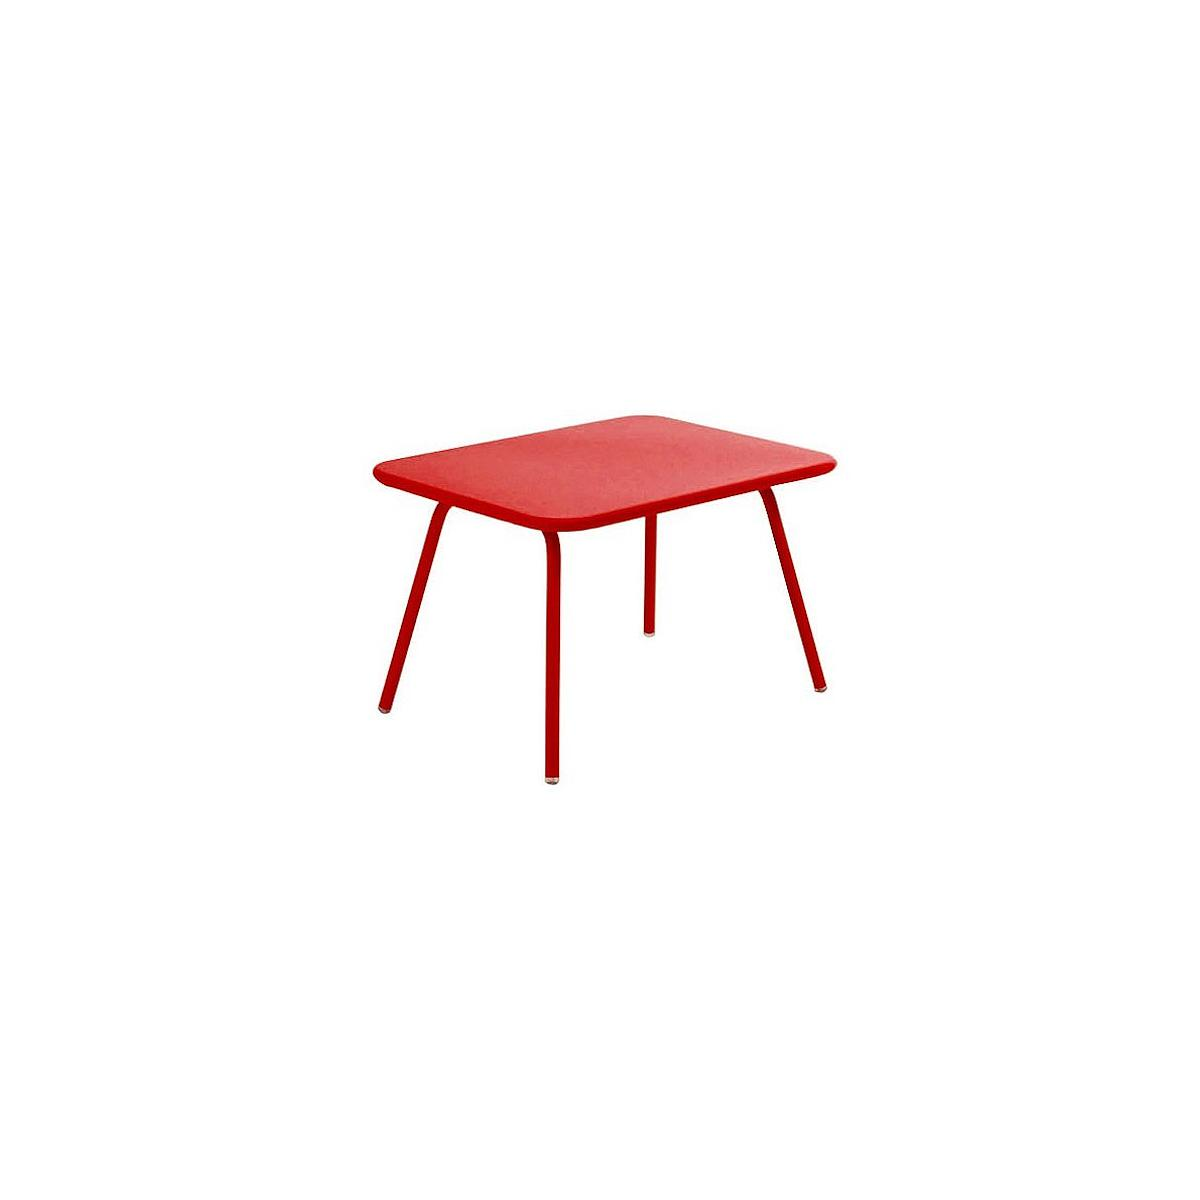 LUXEMBOURG KID by Fermob Table rouge piment